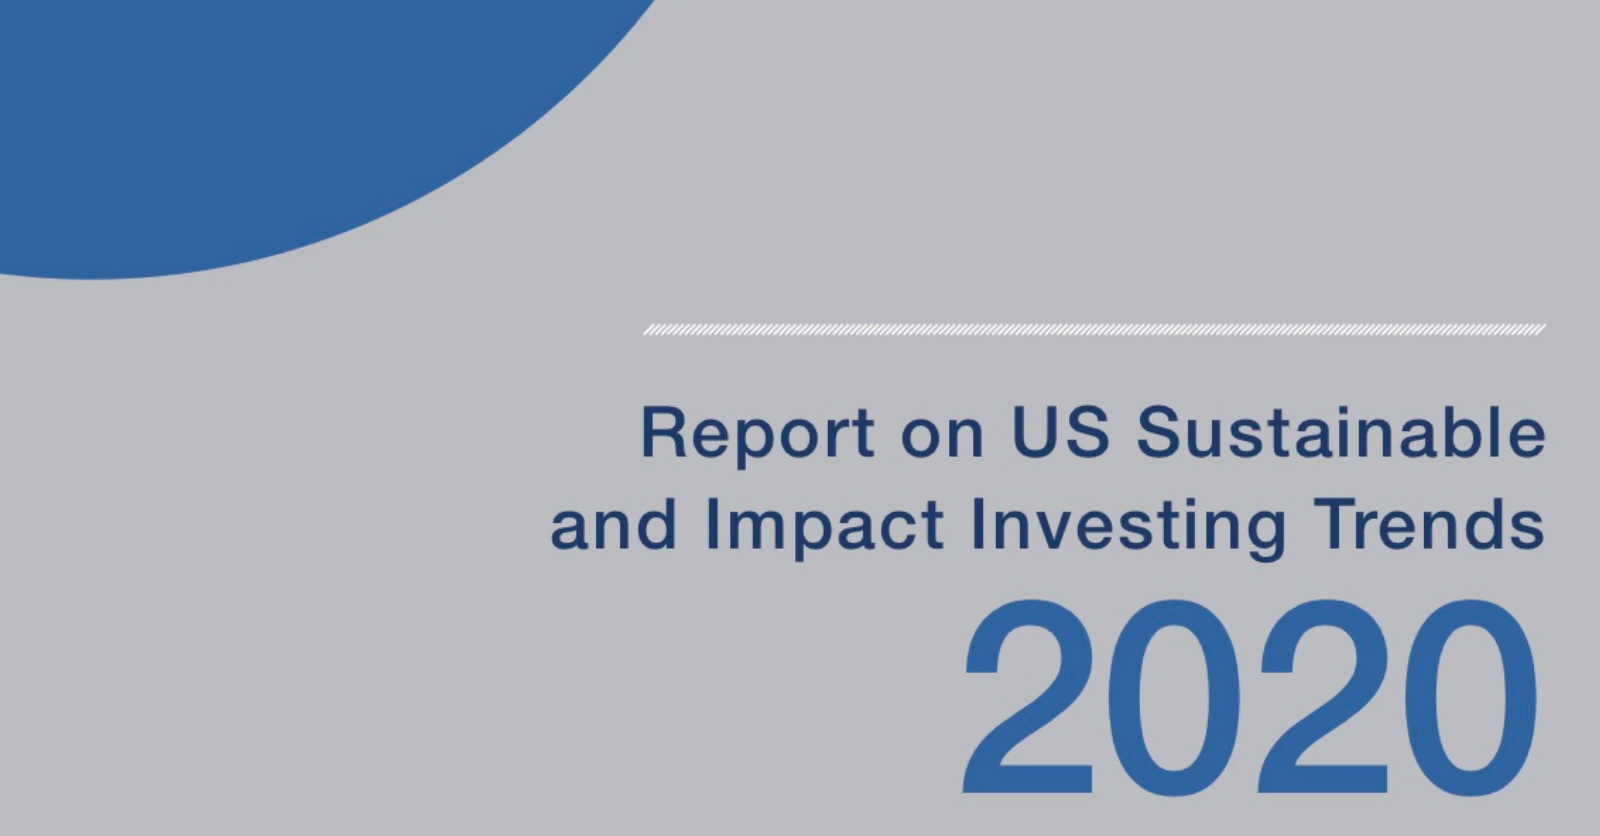 New Trends Report Released: Sustainable Investing Assets Reach $17.1 Trillion